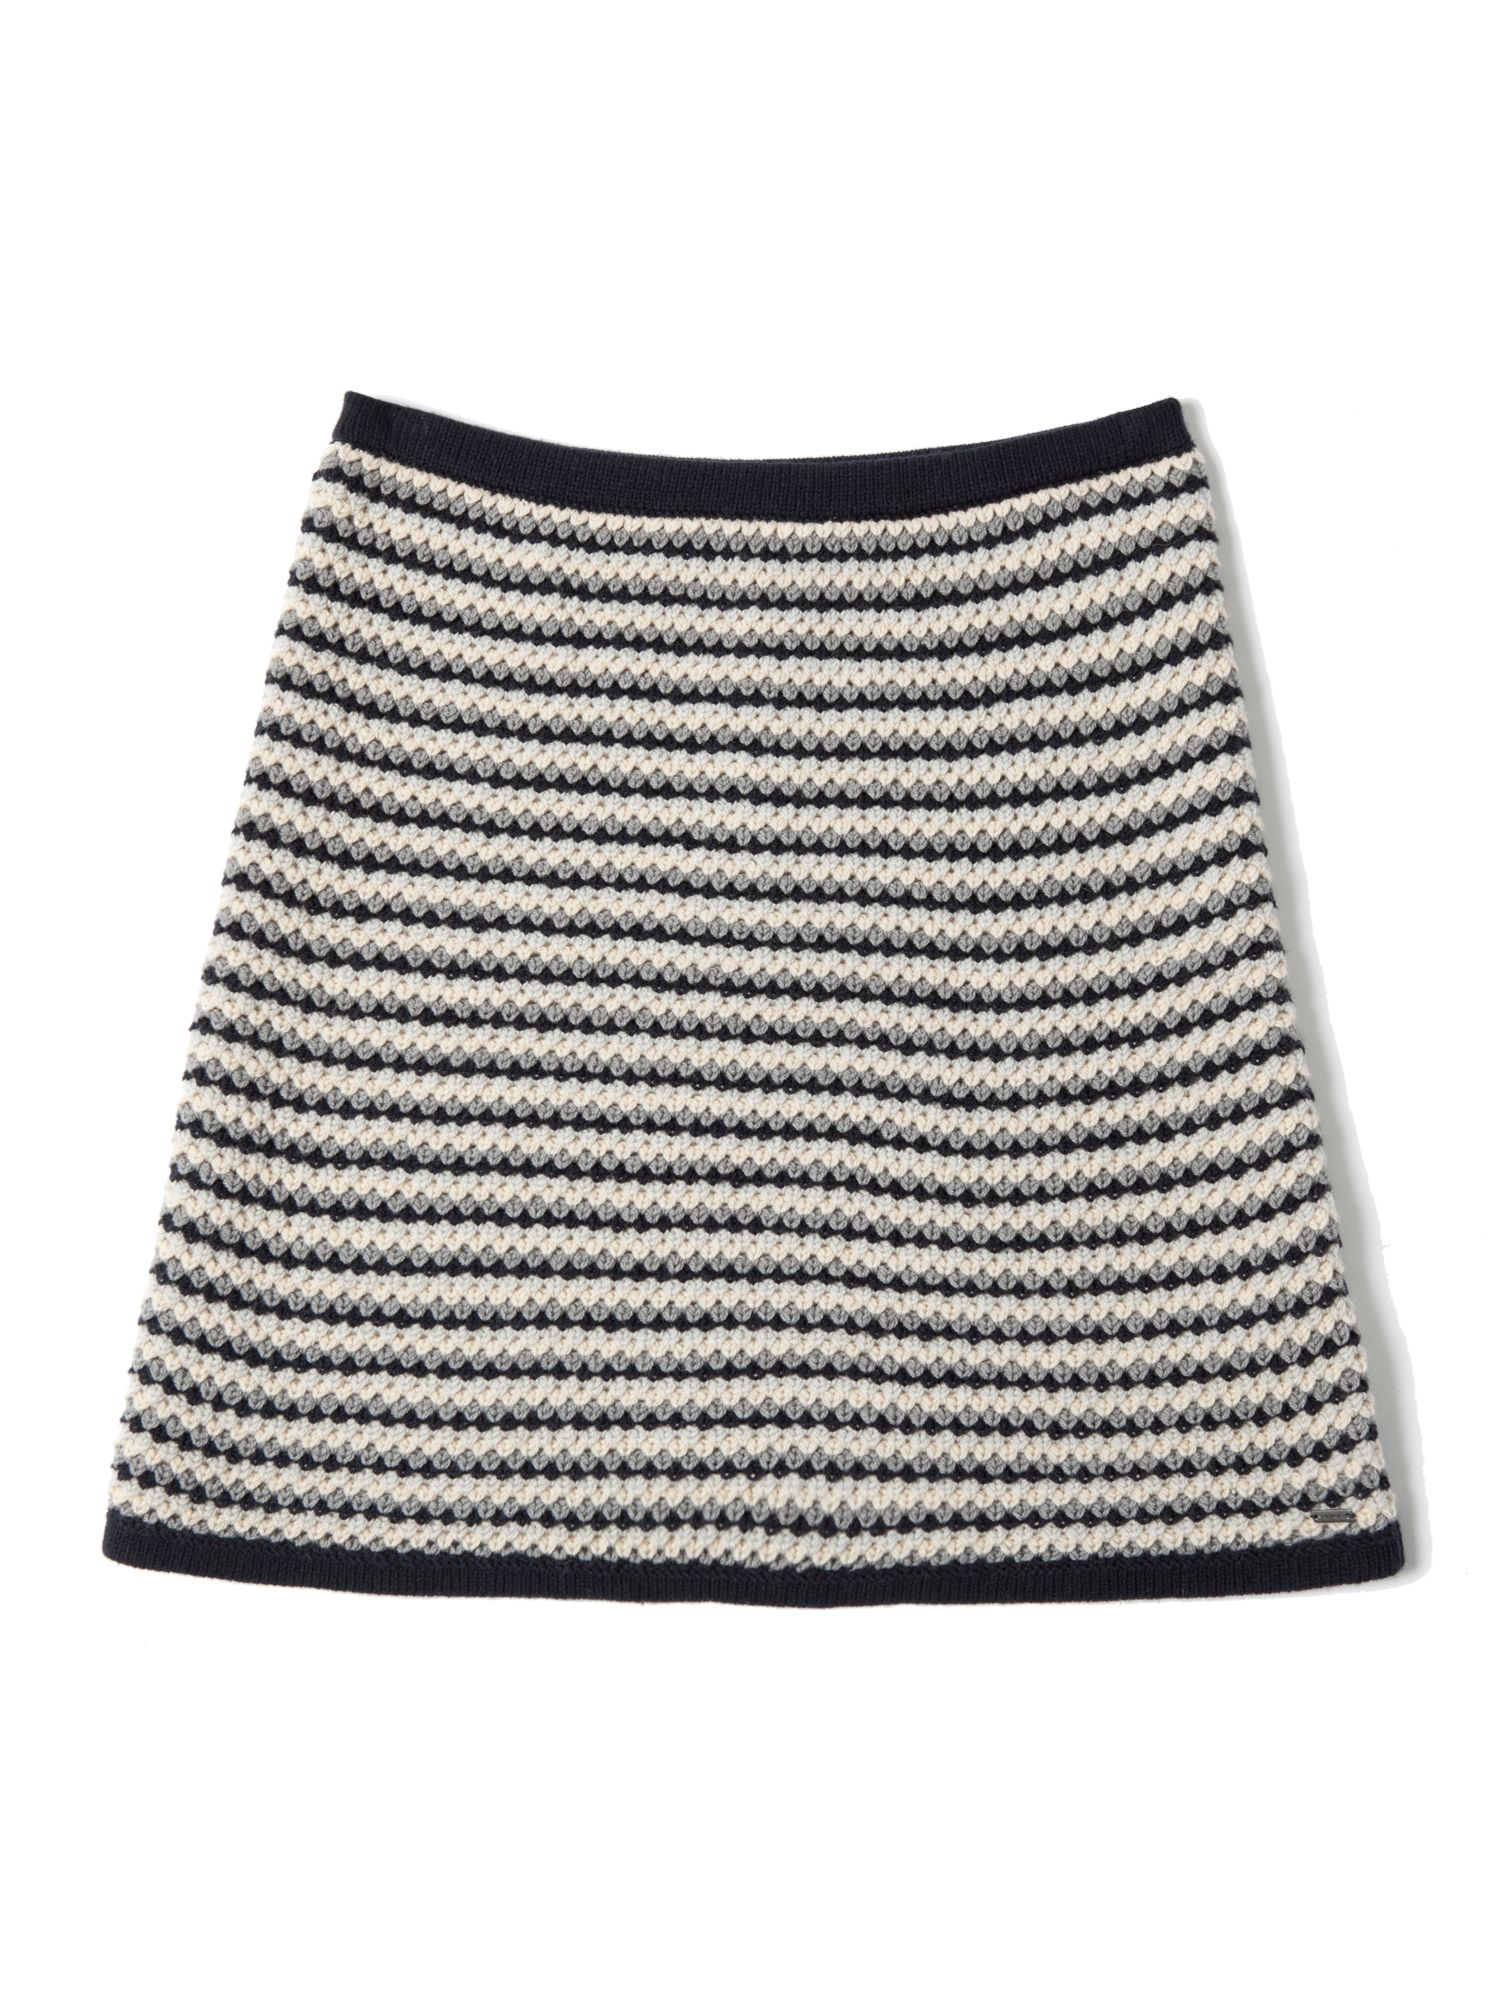 Paxton crochet skirt